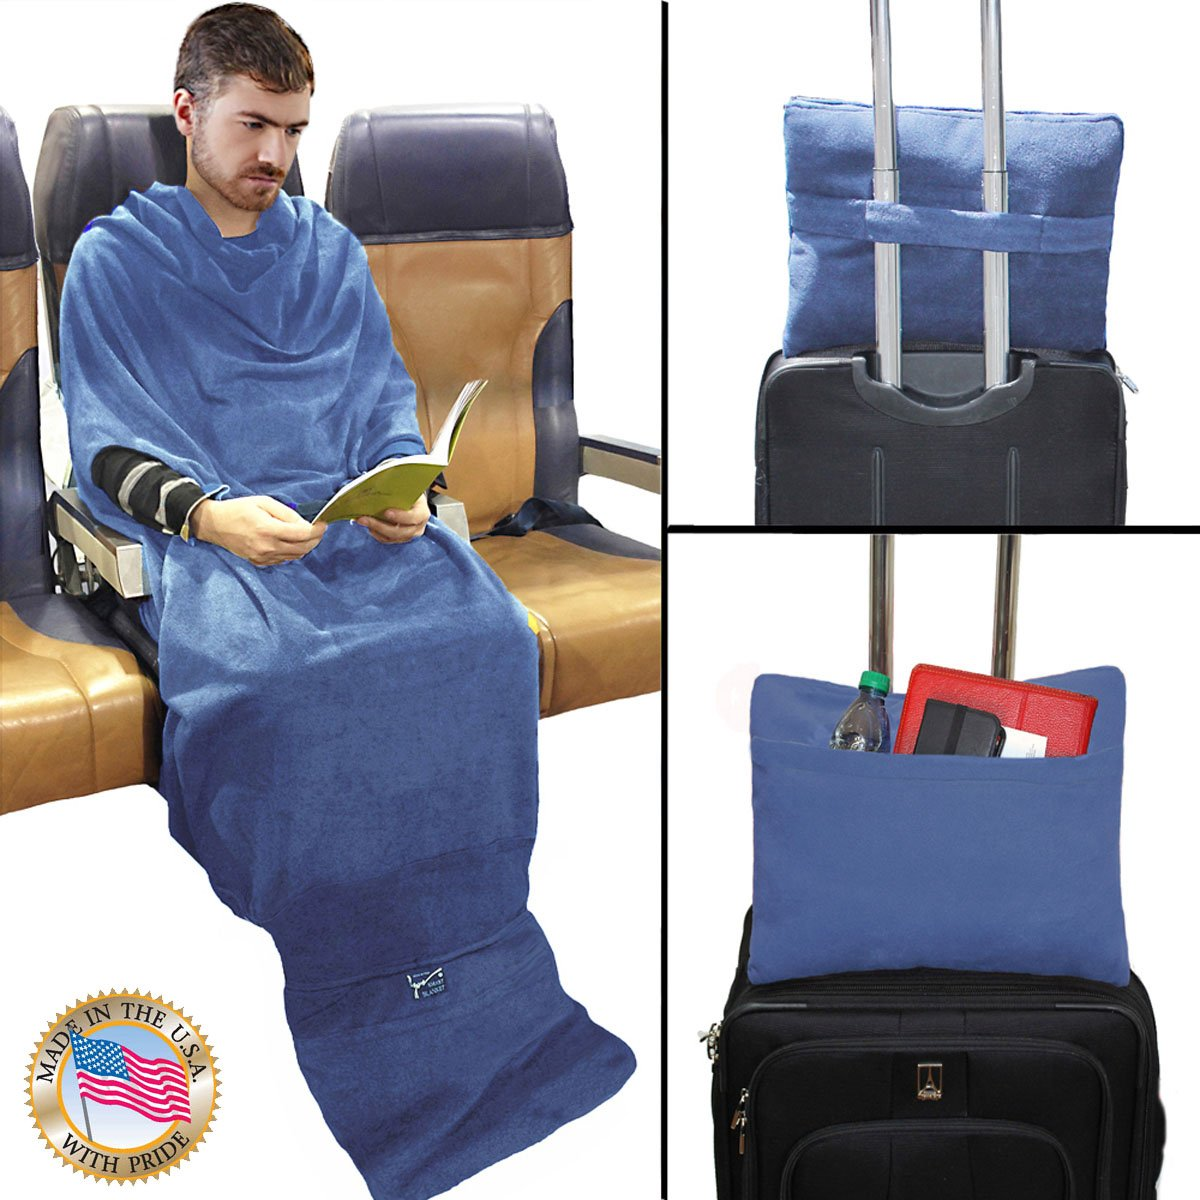 Smart Blanket The Convenient Wearable Throw Blanket - Travel, Home, Office Anywhere - Made in USA - Size: SM/MED - Color Denim